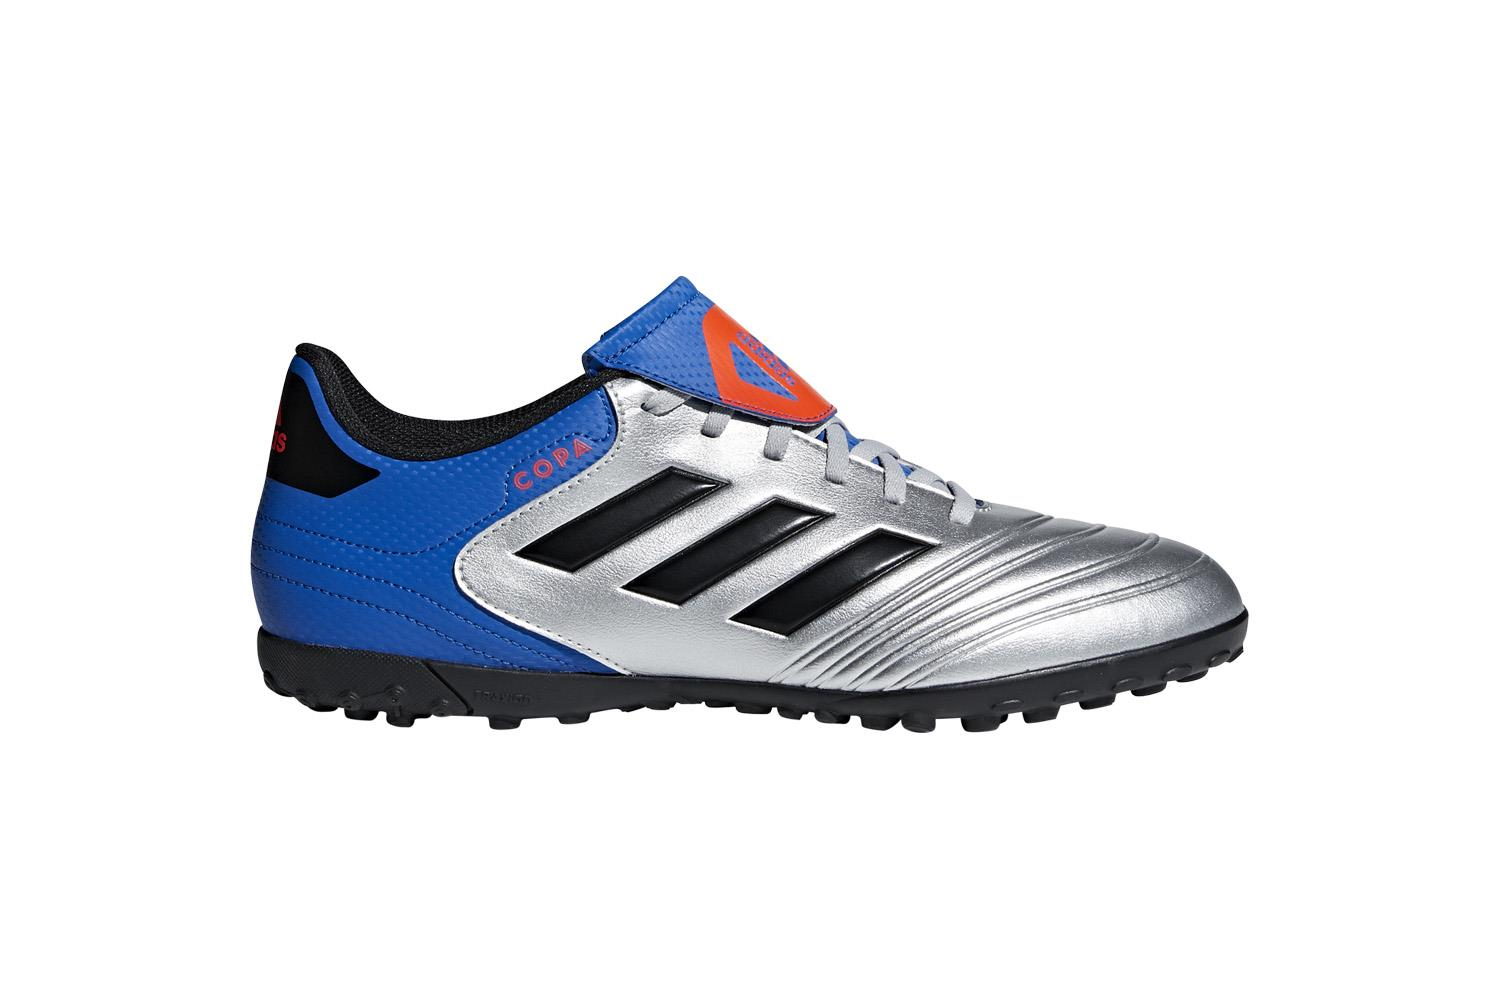 new products 1fe16 270b9 Adidas Copa Tango 18.4 Tf - ADIDAS PERFORMANCE - Anaclerico